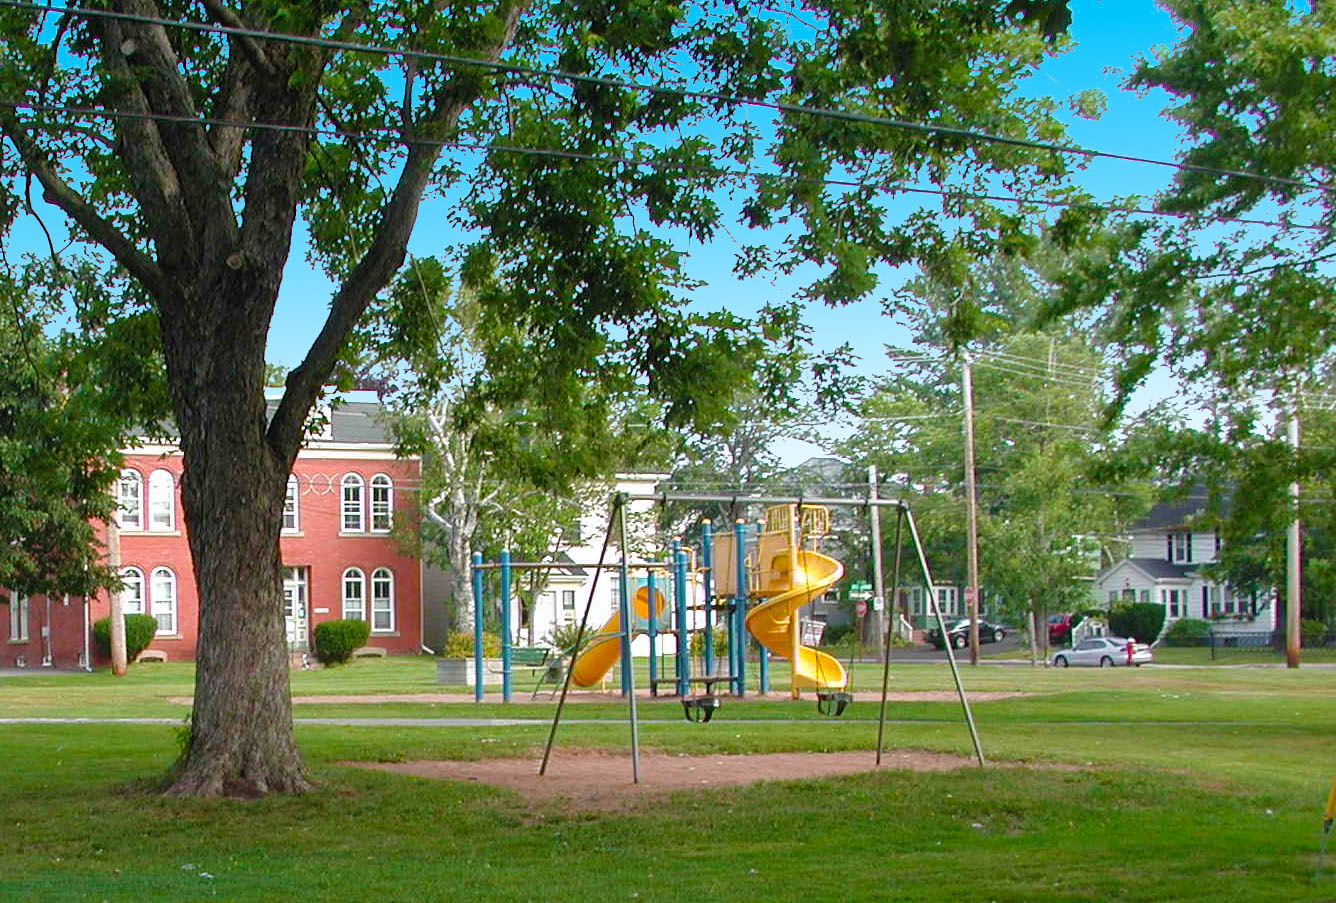 Neighbourhood Park with Playground